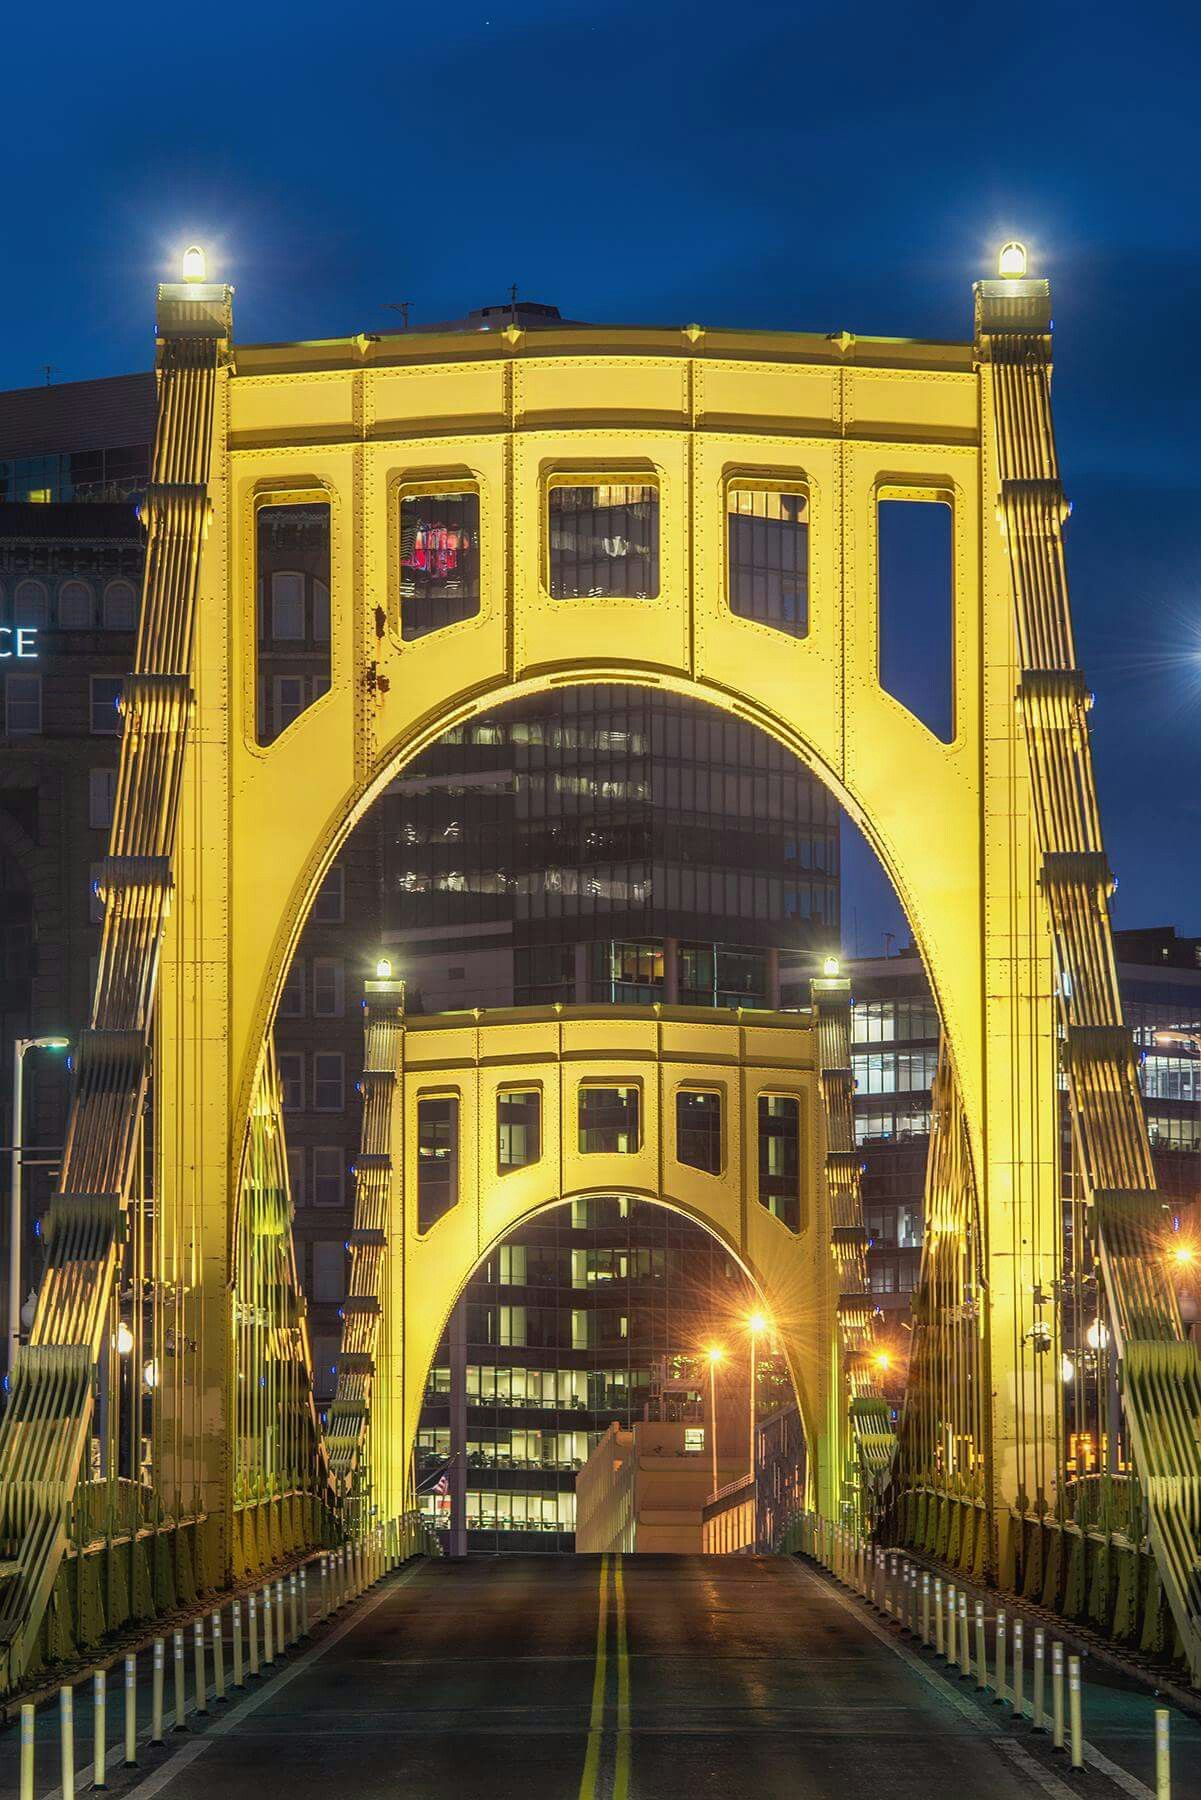 Pin by Heather K on Pittsburgh Love (With images